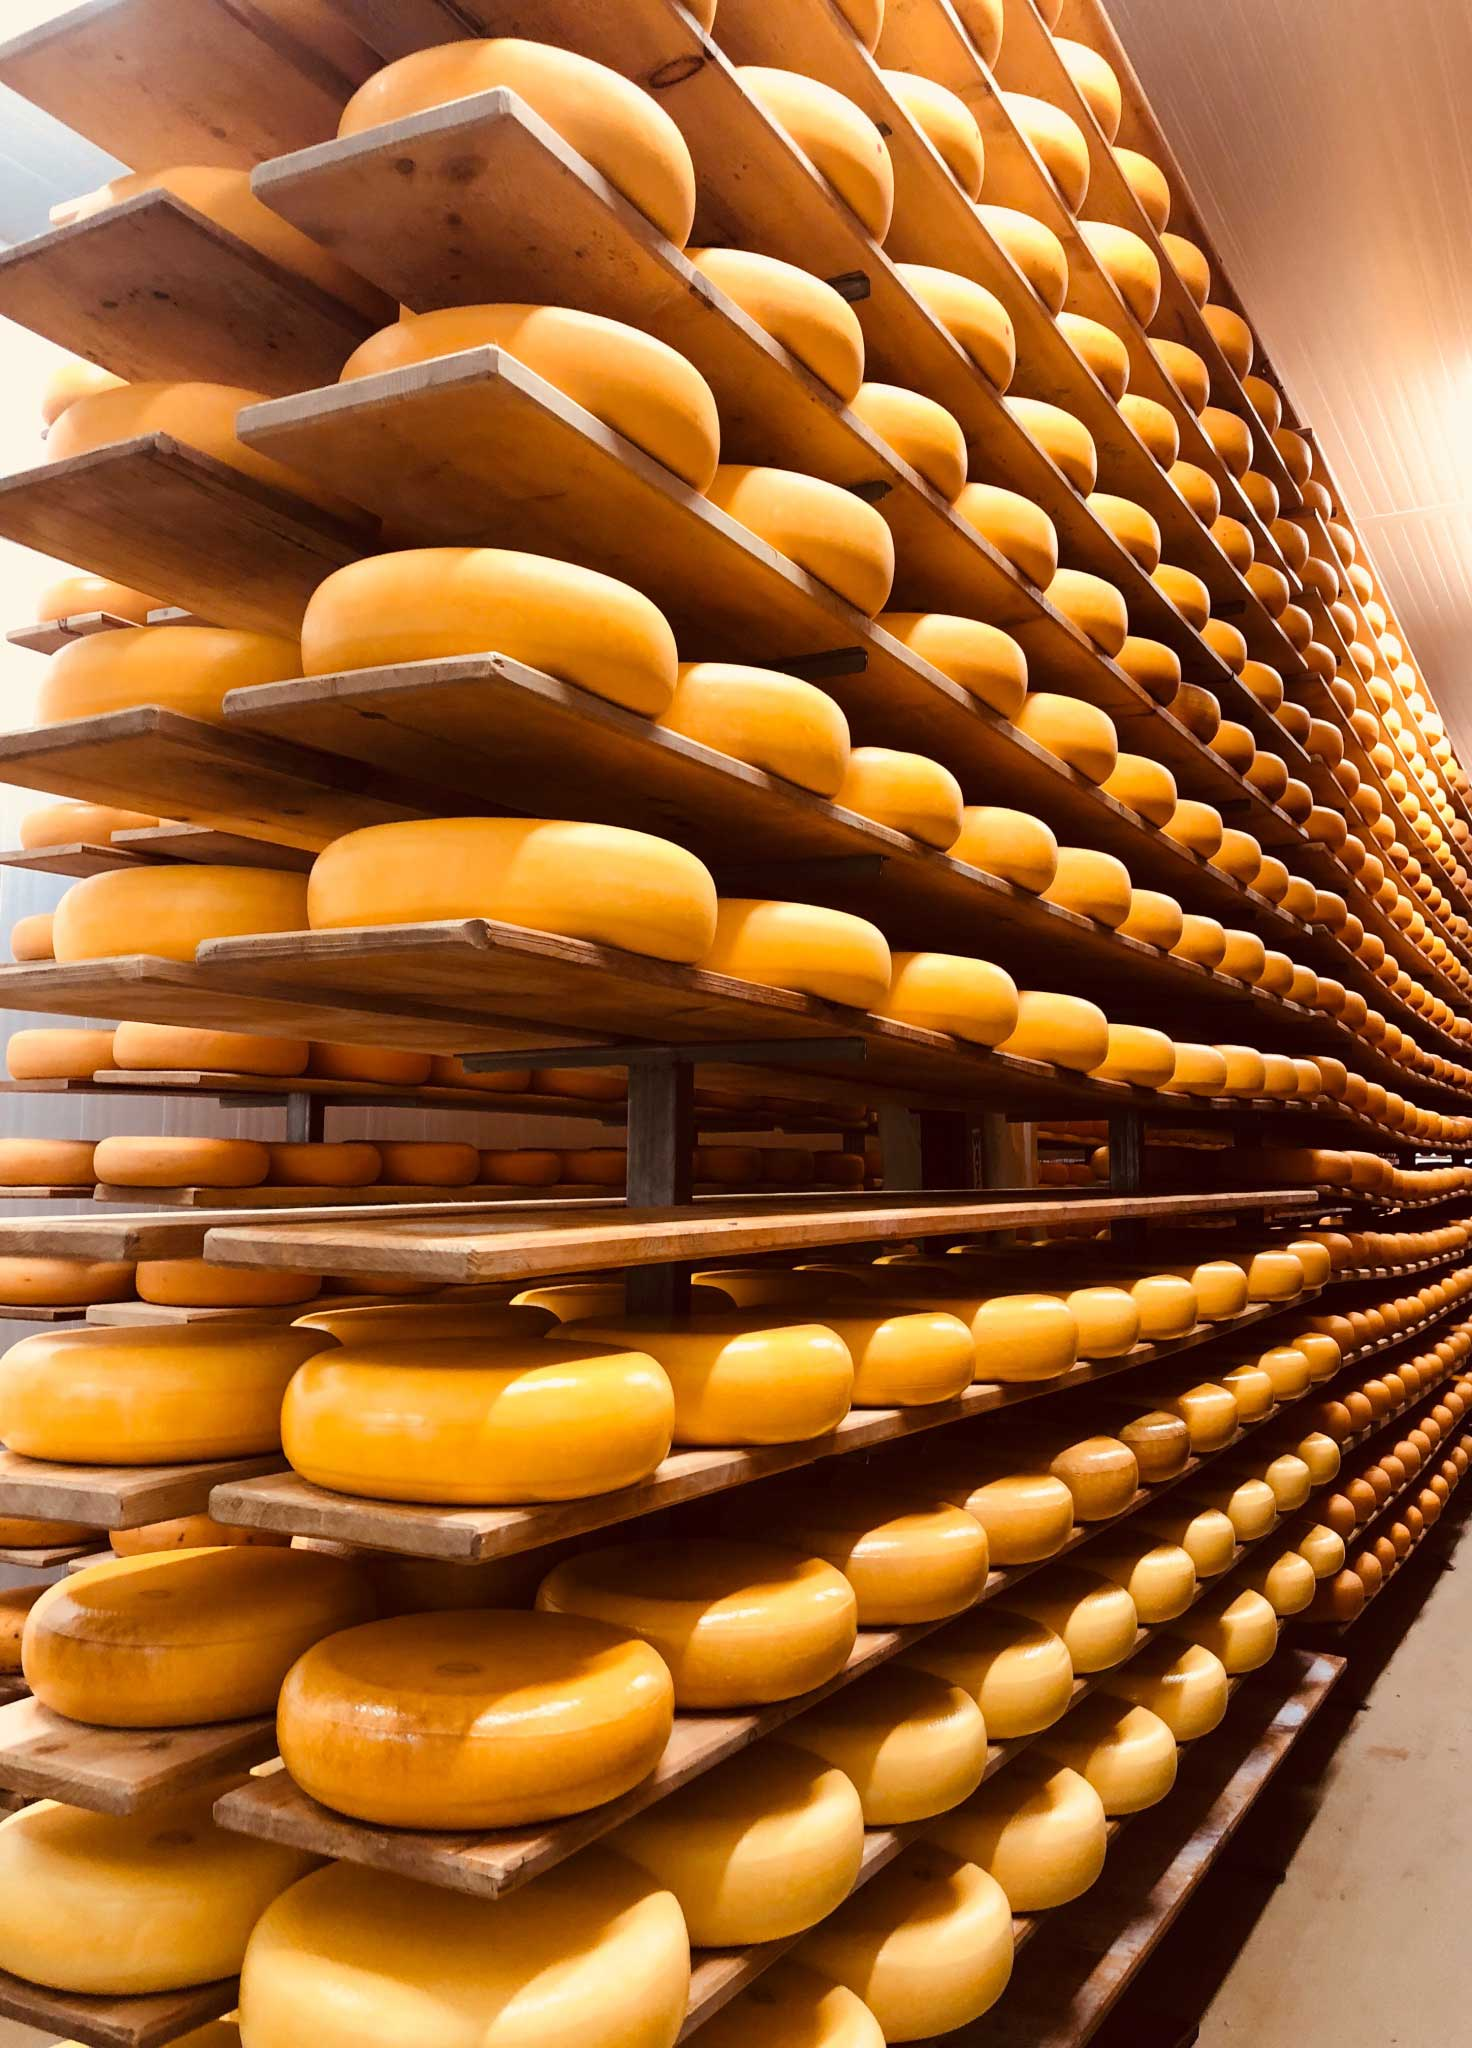 Mountainoak cheese